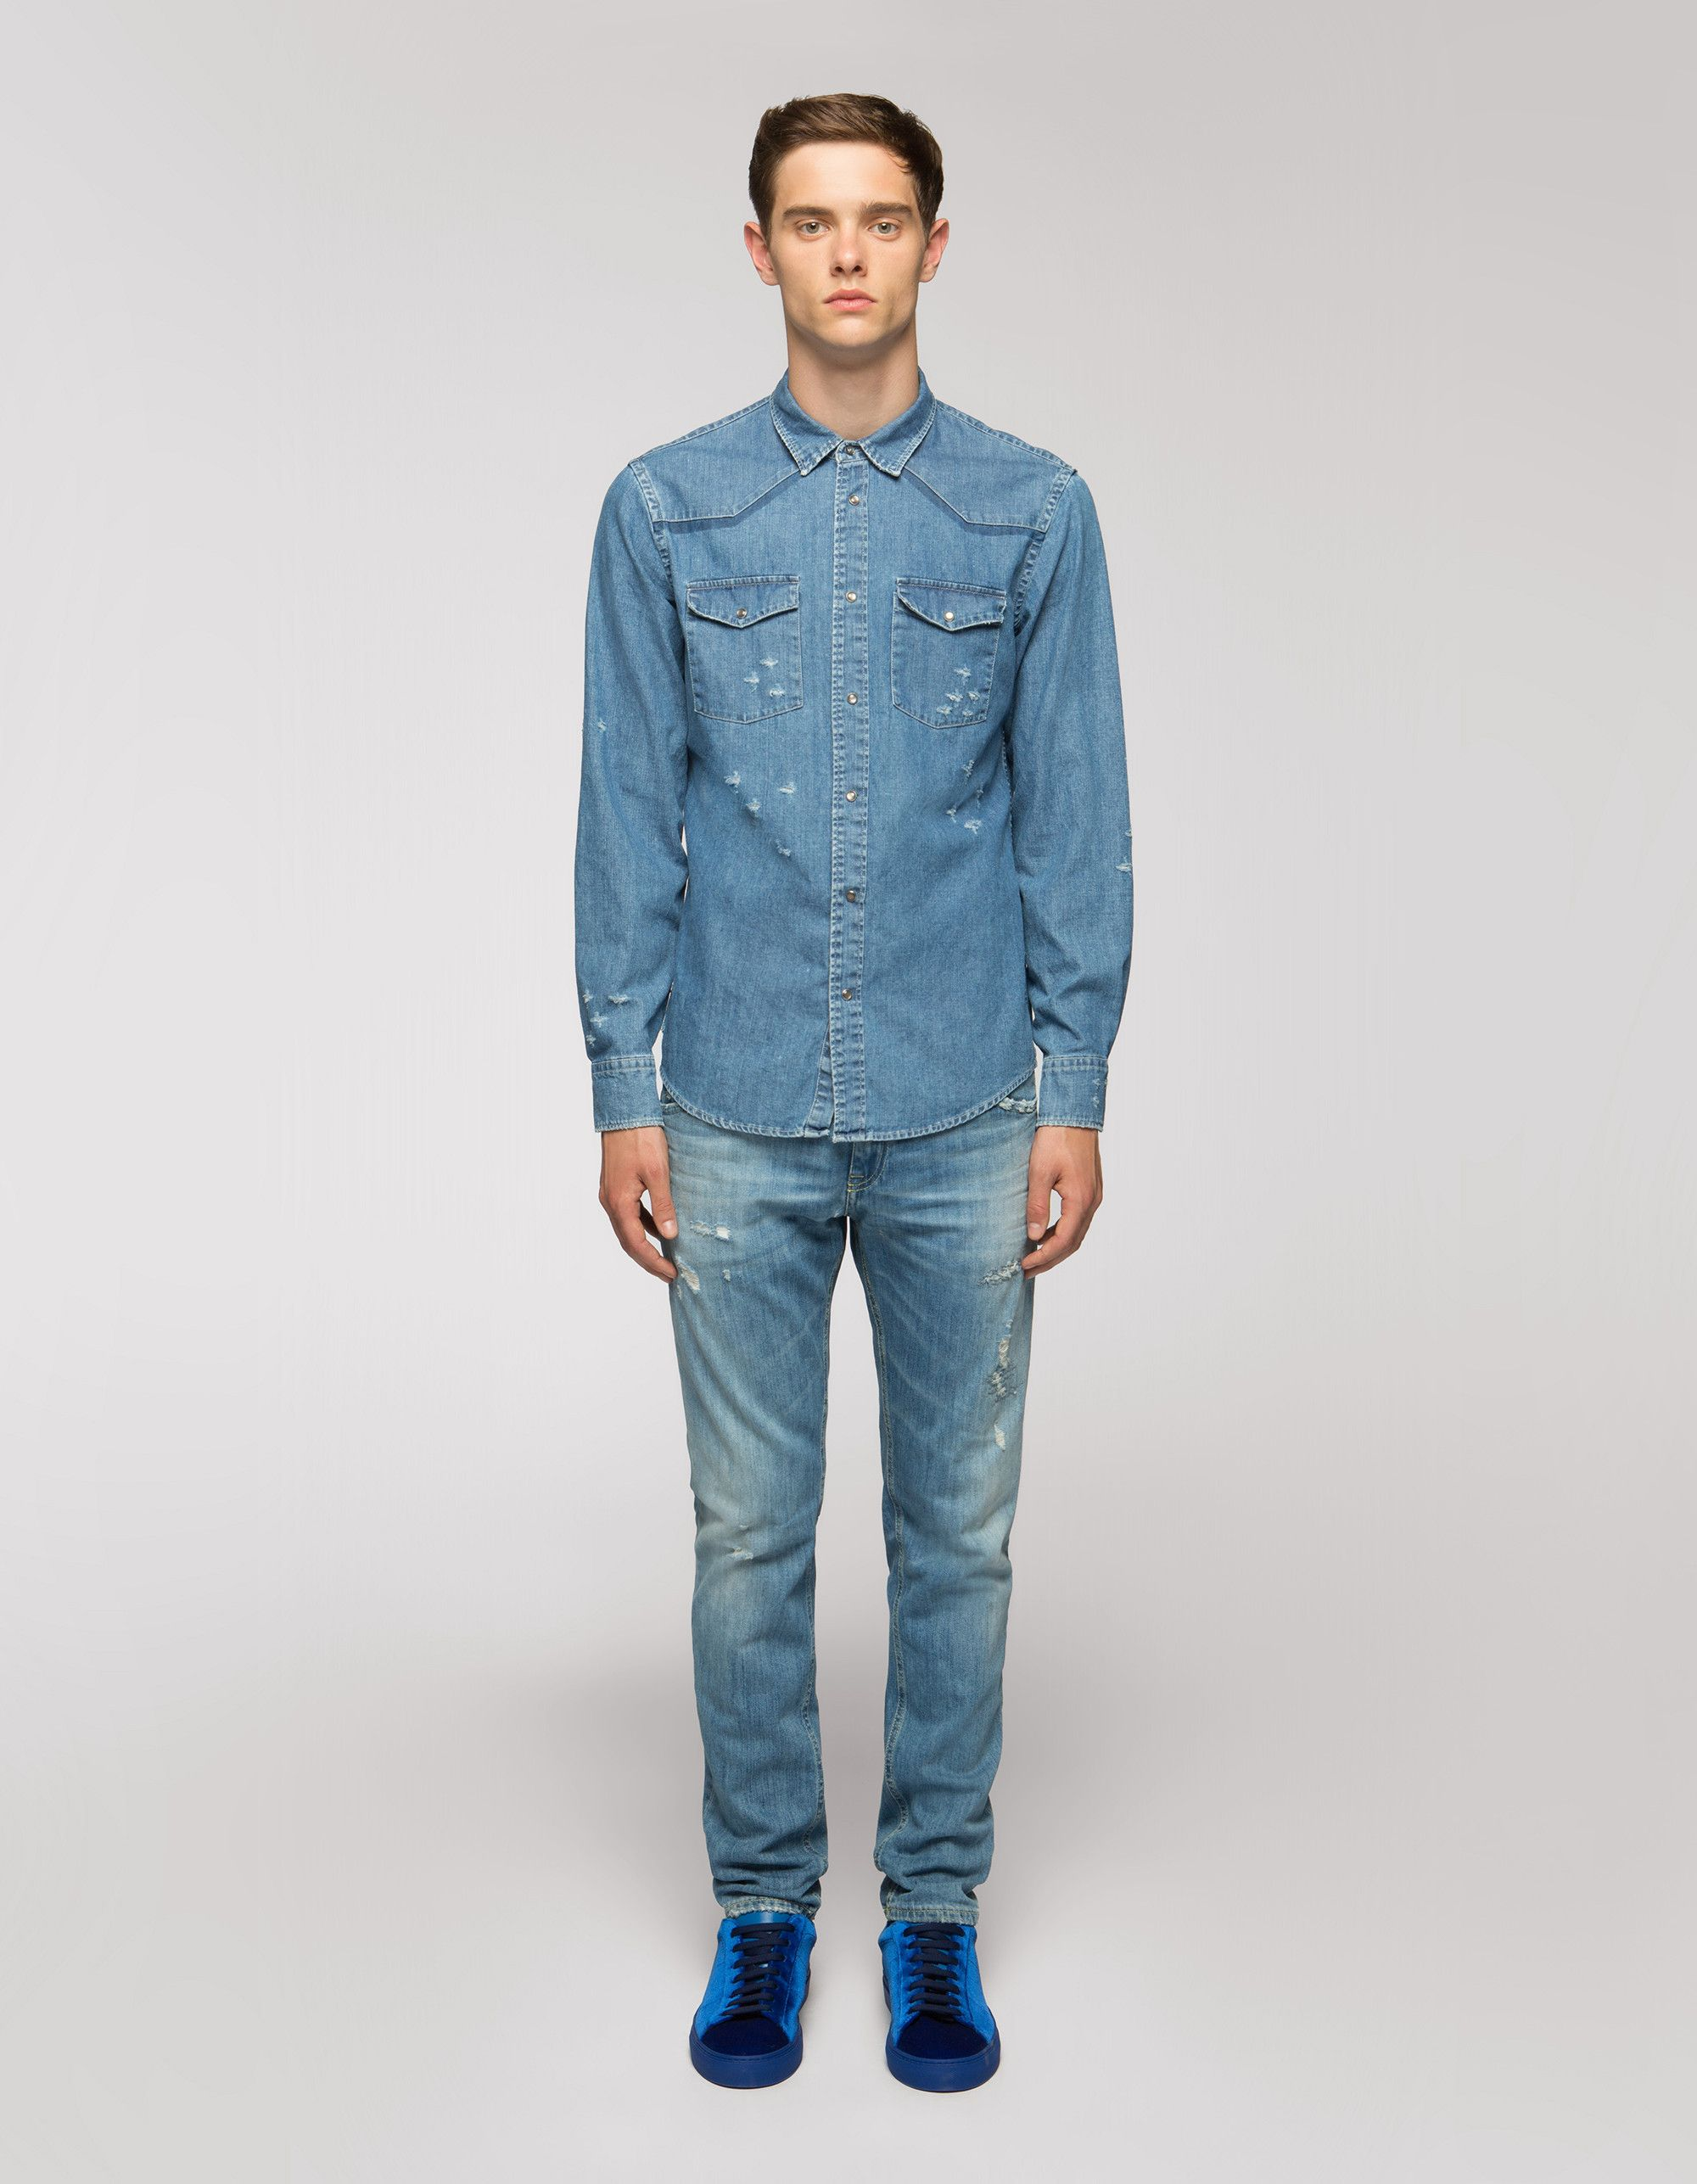 Denim shirt man fall winter collection urban explorers